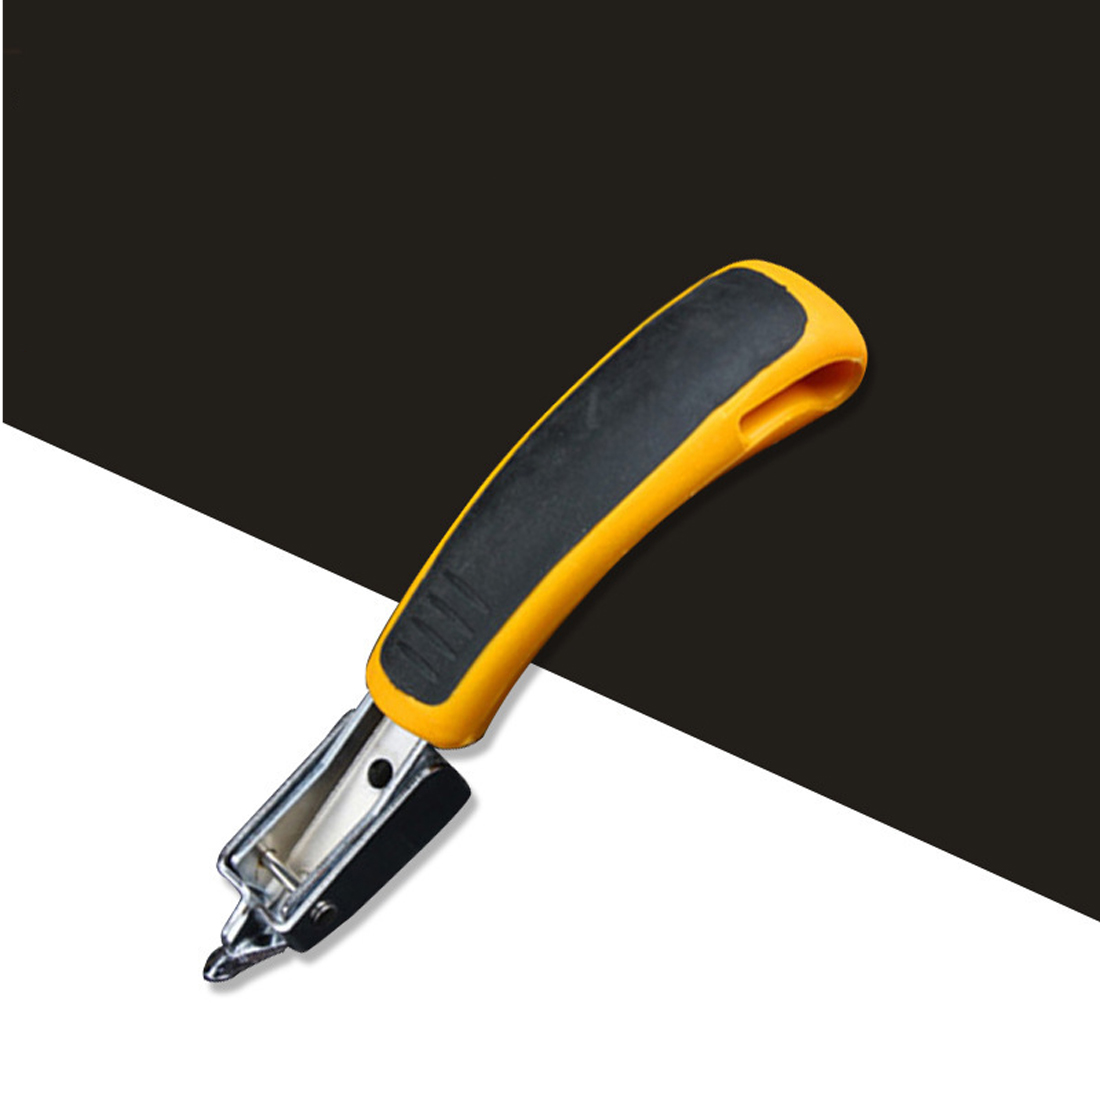 Nail Puller Staple Remover Duty Upholstery Durable Practical Professional Hand